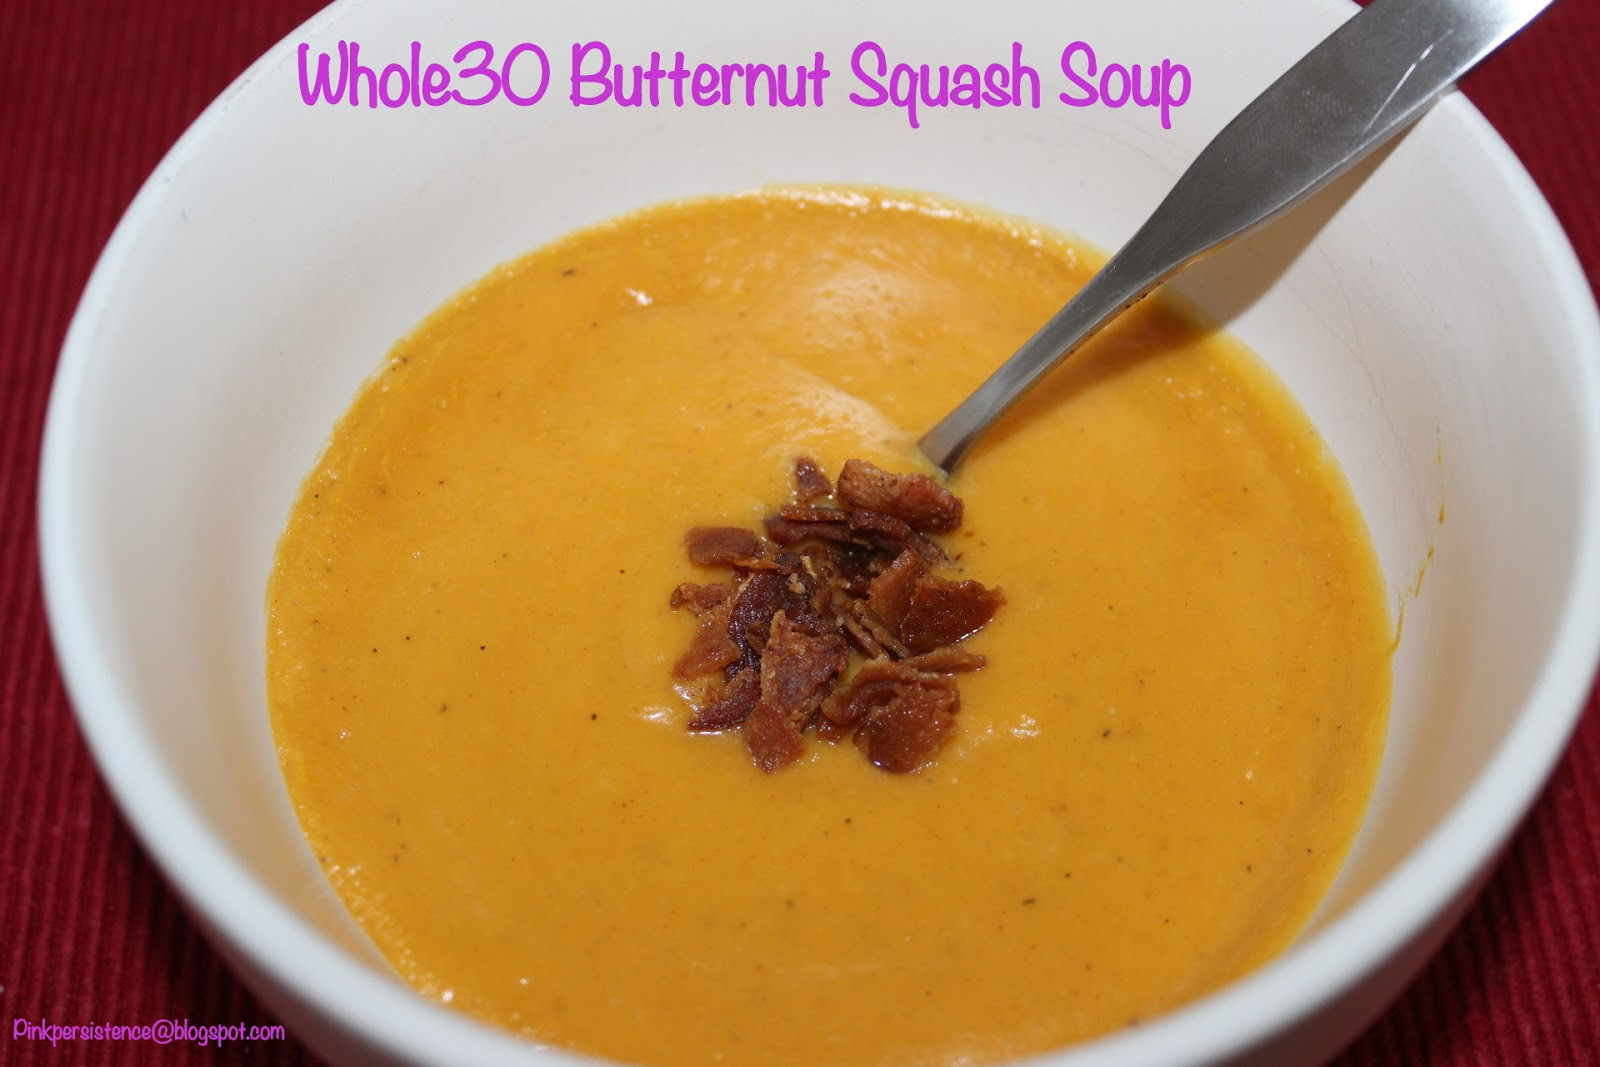 Whole30 Butternut Squash Soup  p nkpers stence Homemade Whole30 Butternut Squash Soup